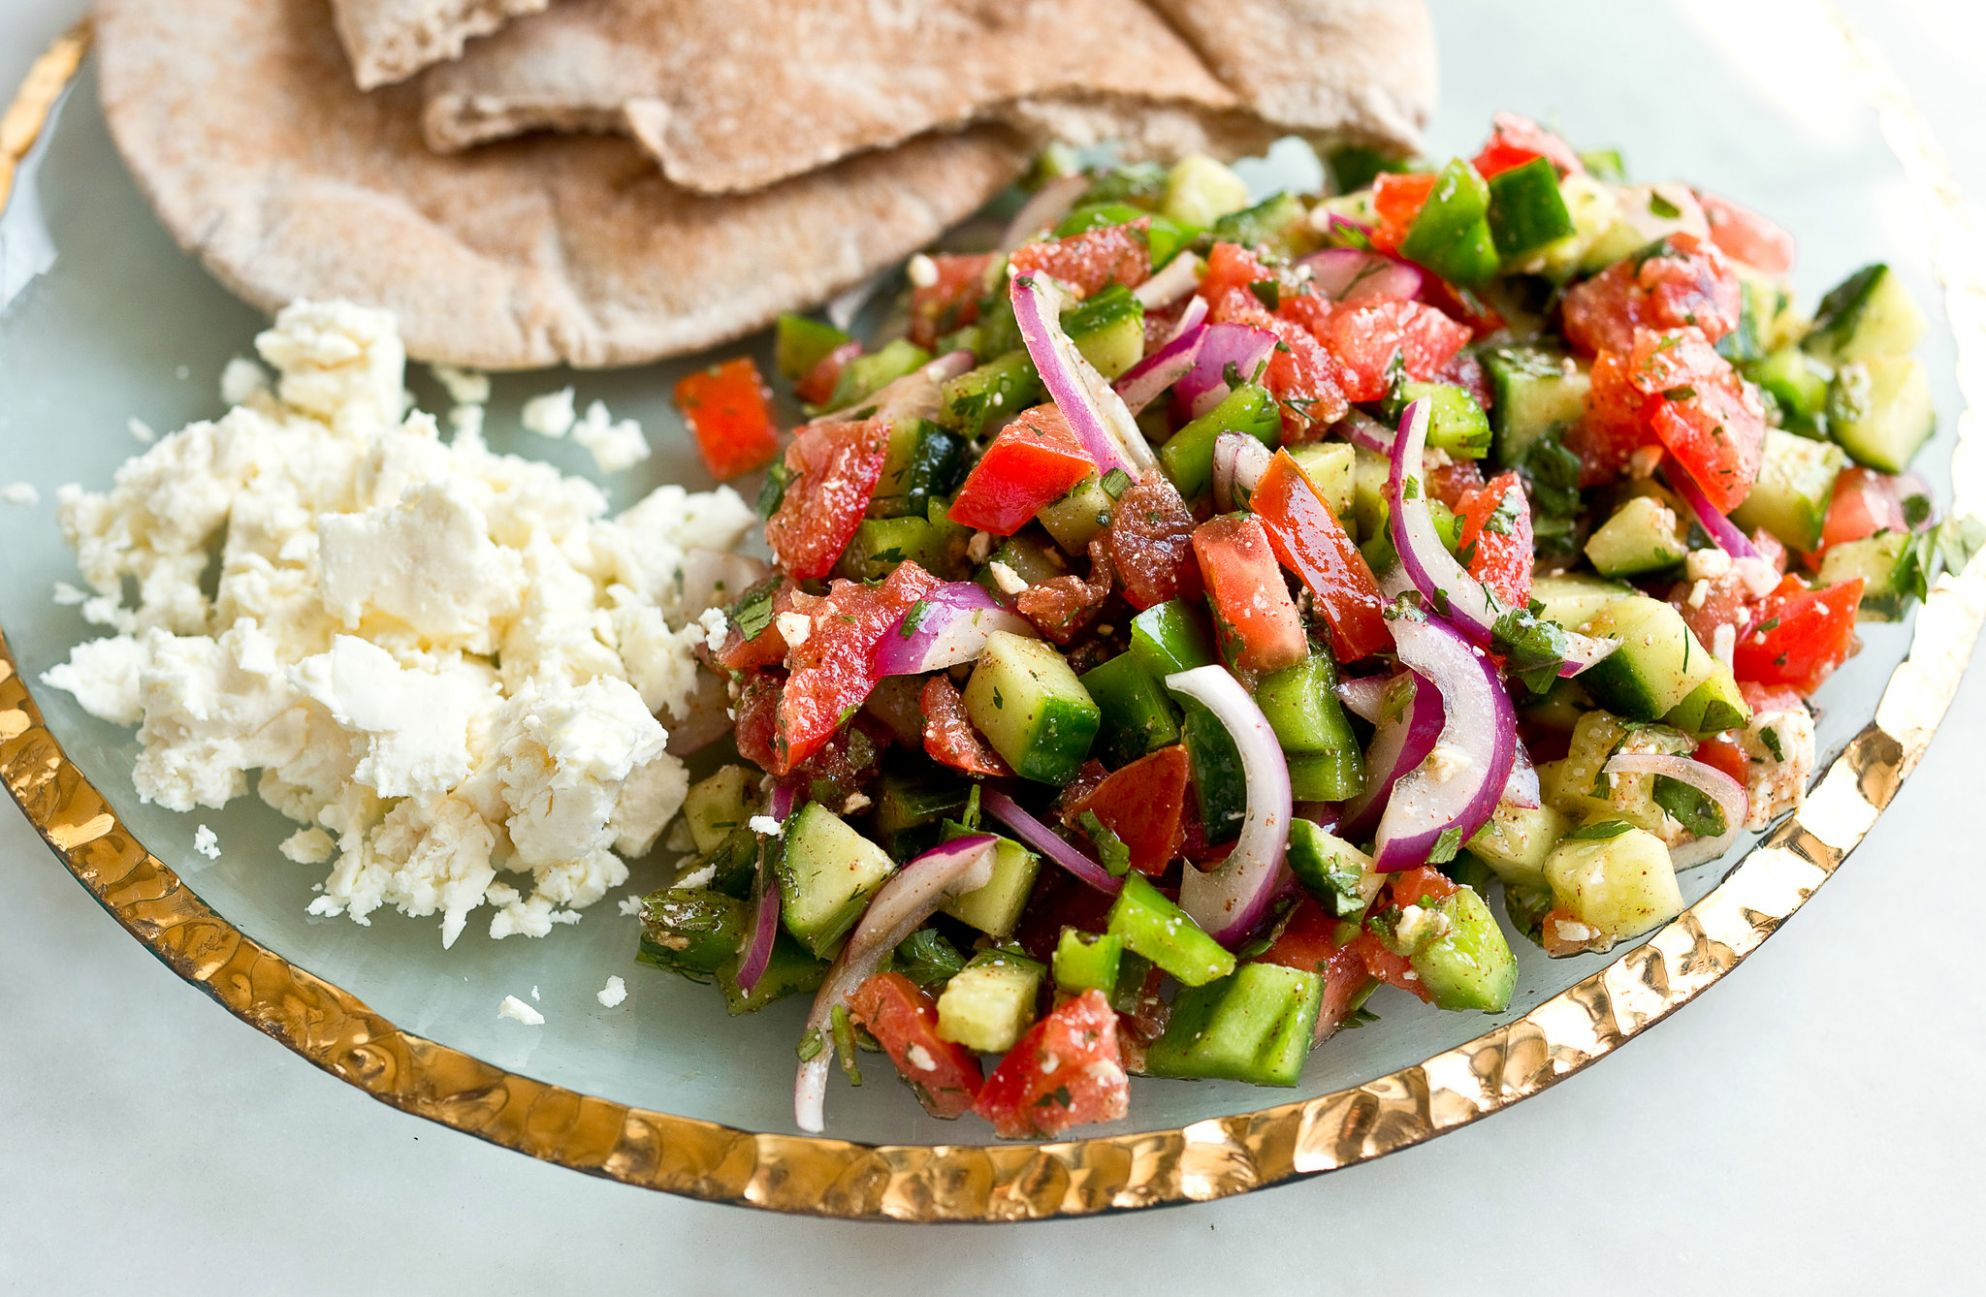 Turkish Shepherd's Salad — Recipes for Health - The New York Times